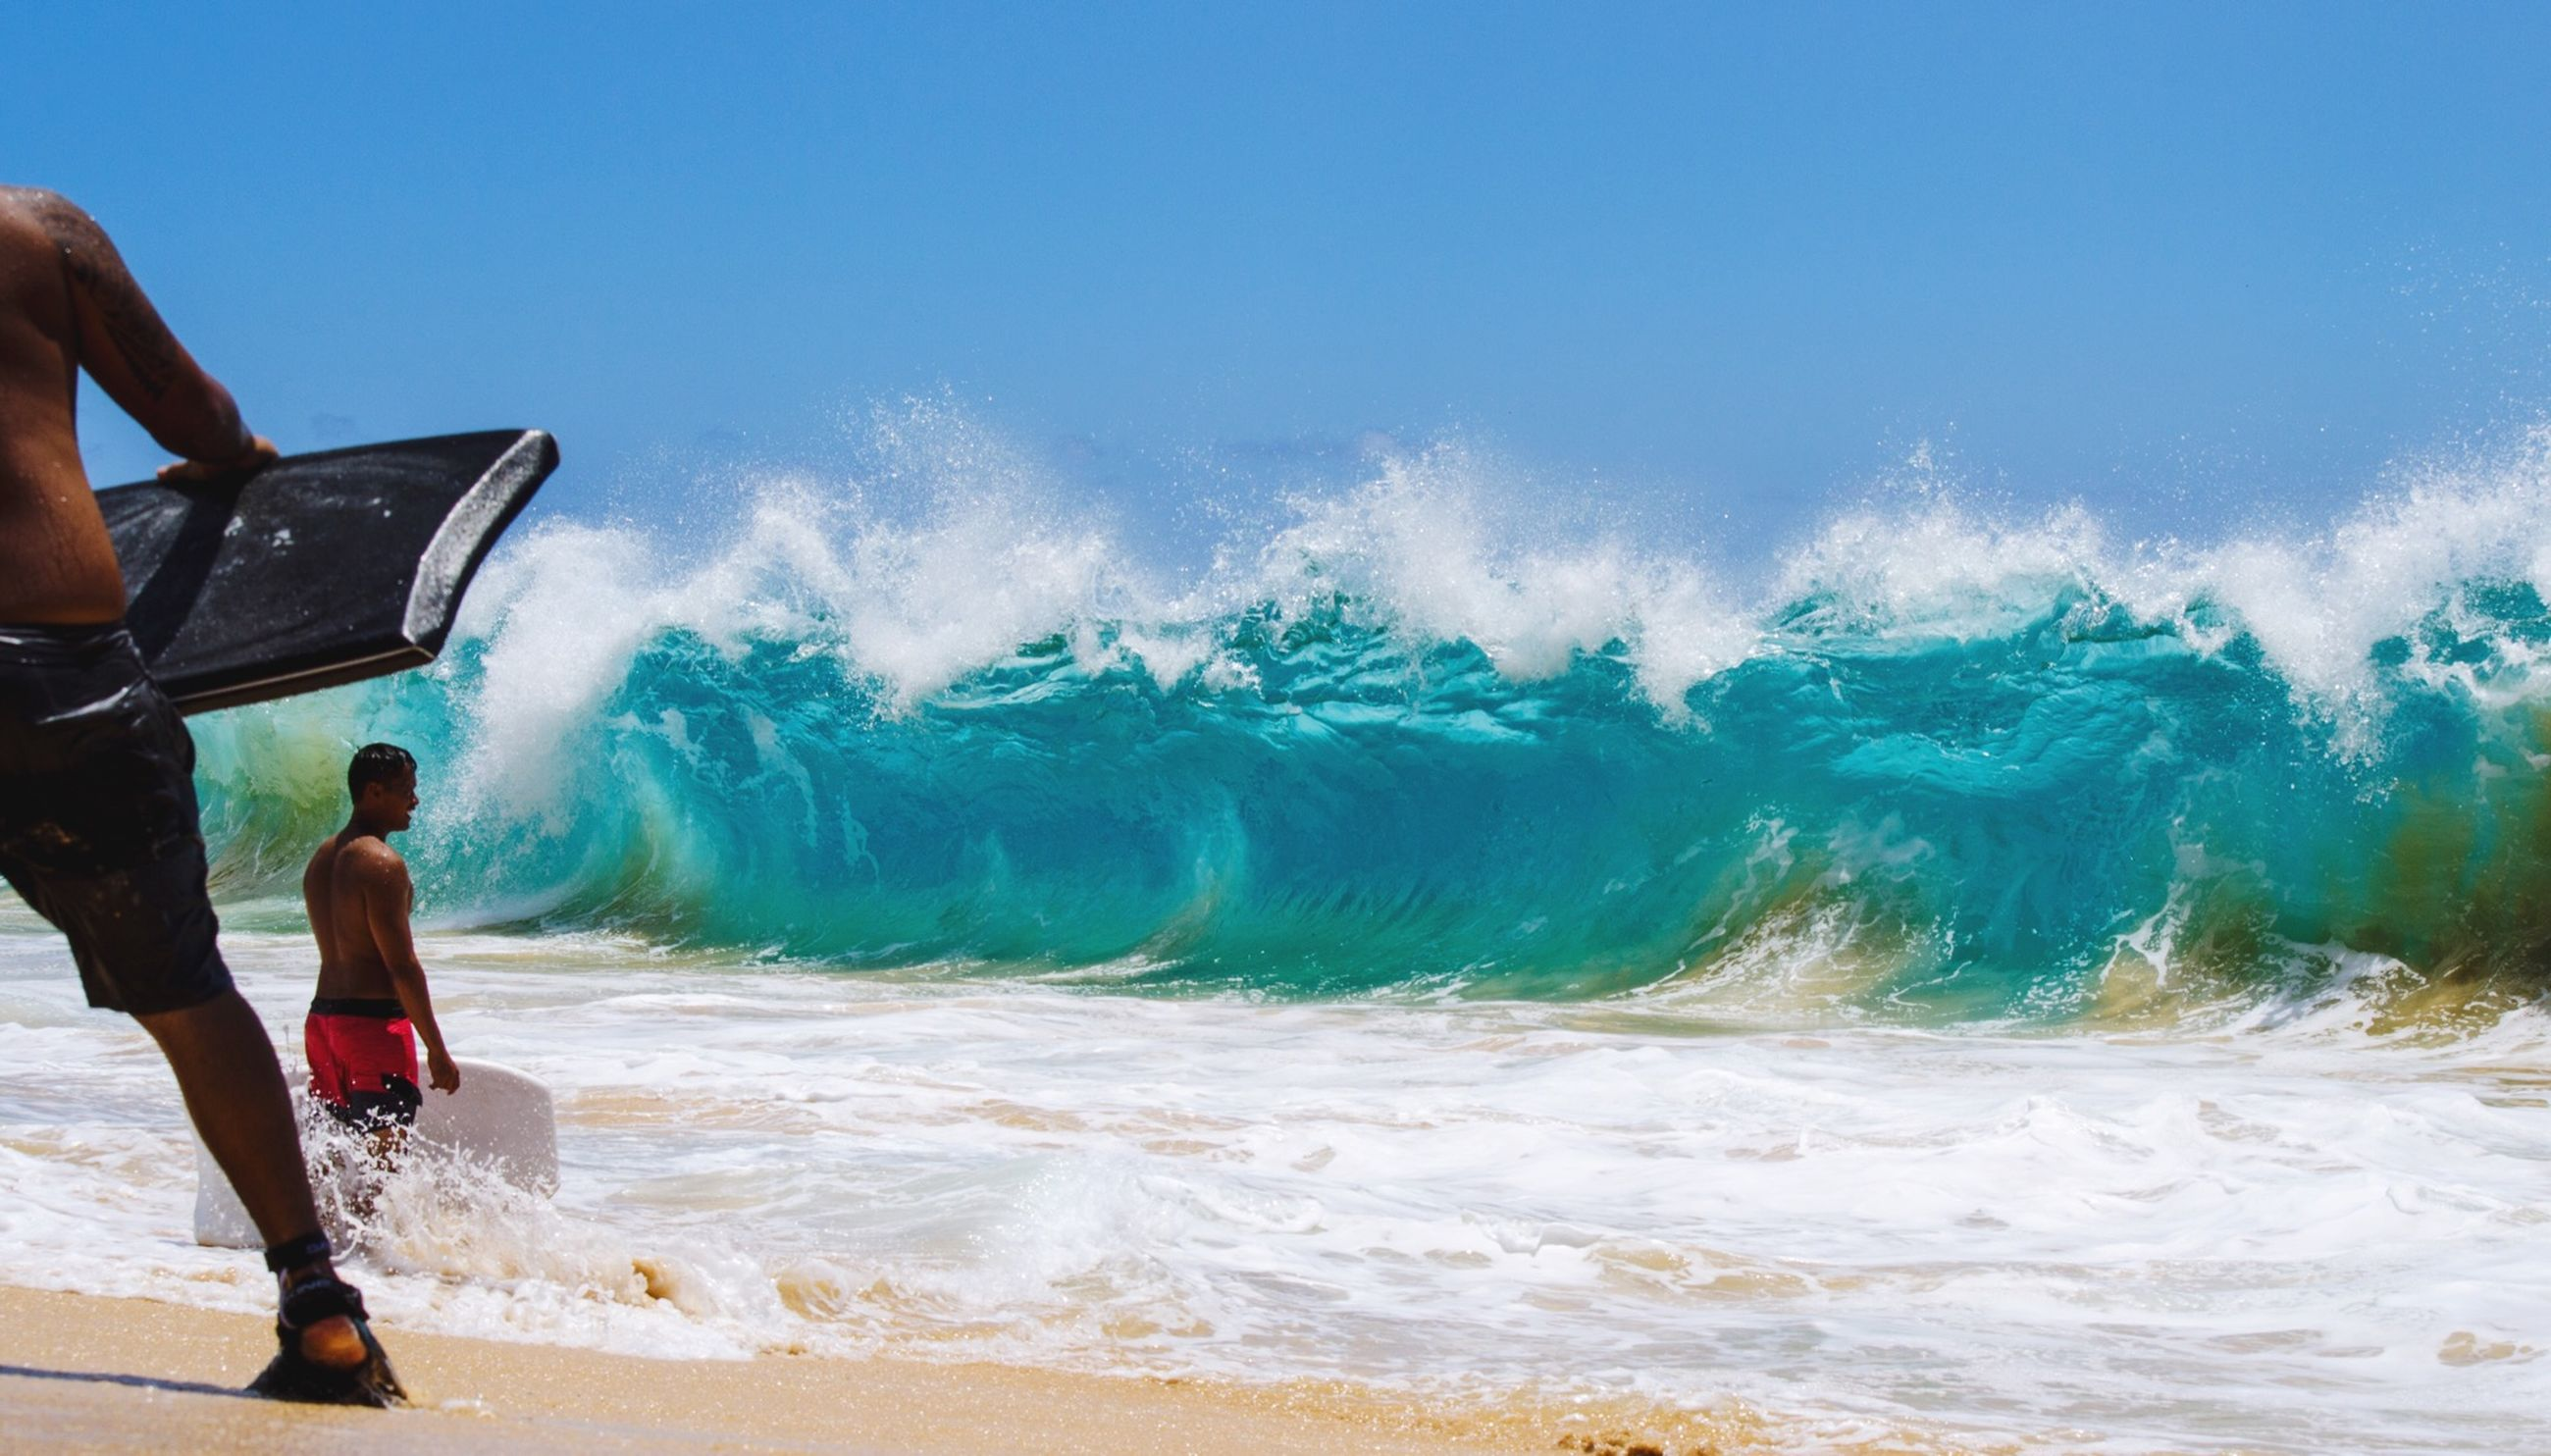 lifestyles, leisure activity, sea, water, beach, motion, men, wave, surf, vacations, full length, shore, sky, horizon over water, holding, standing, sand, scenics